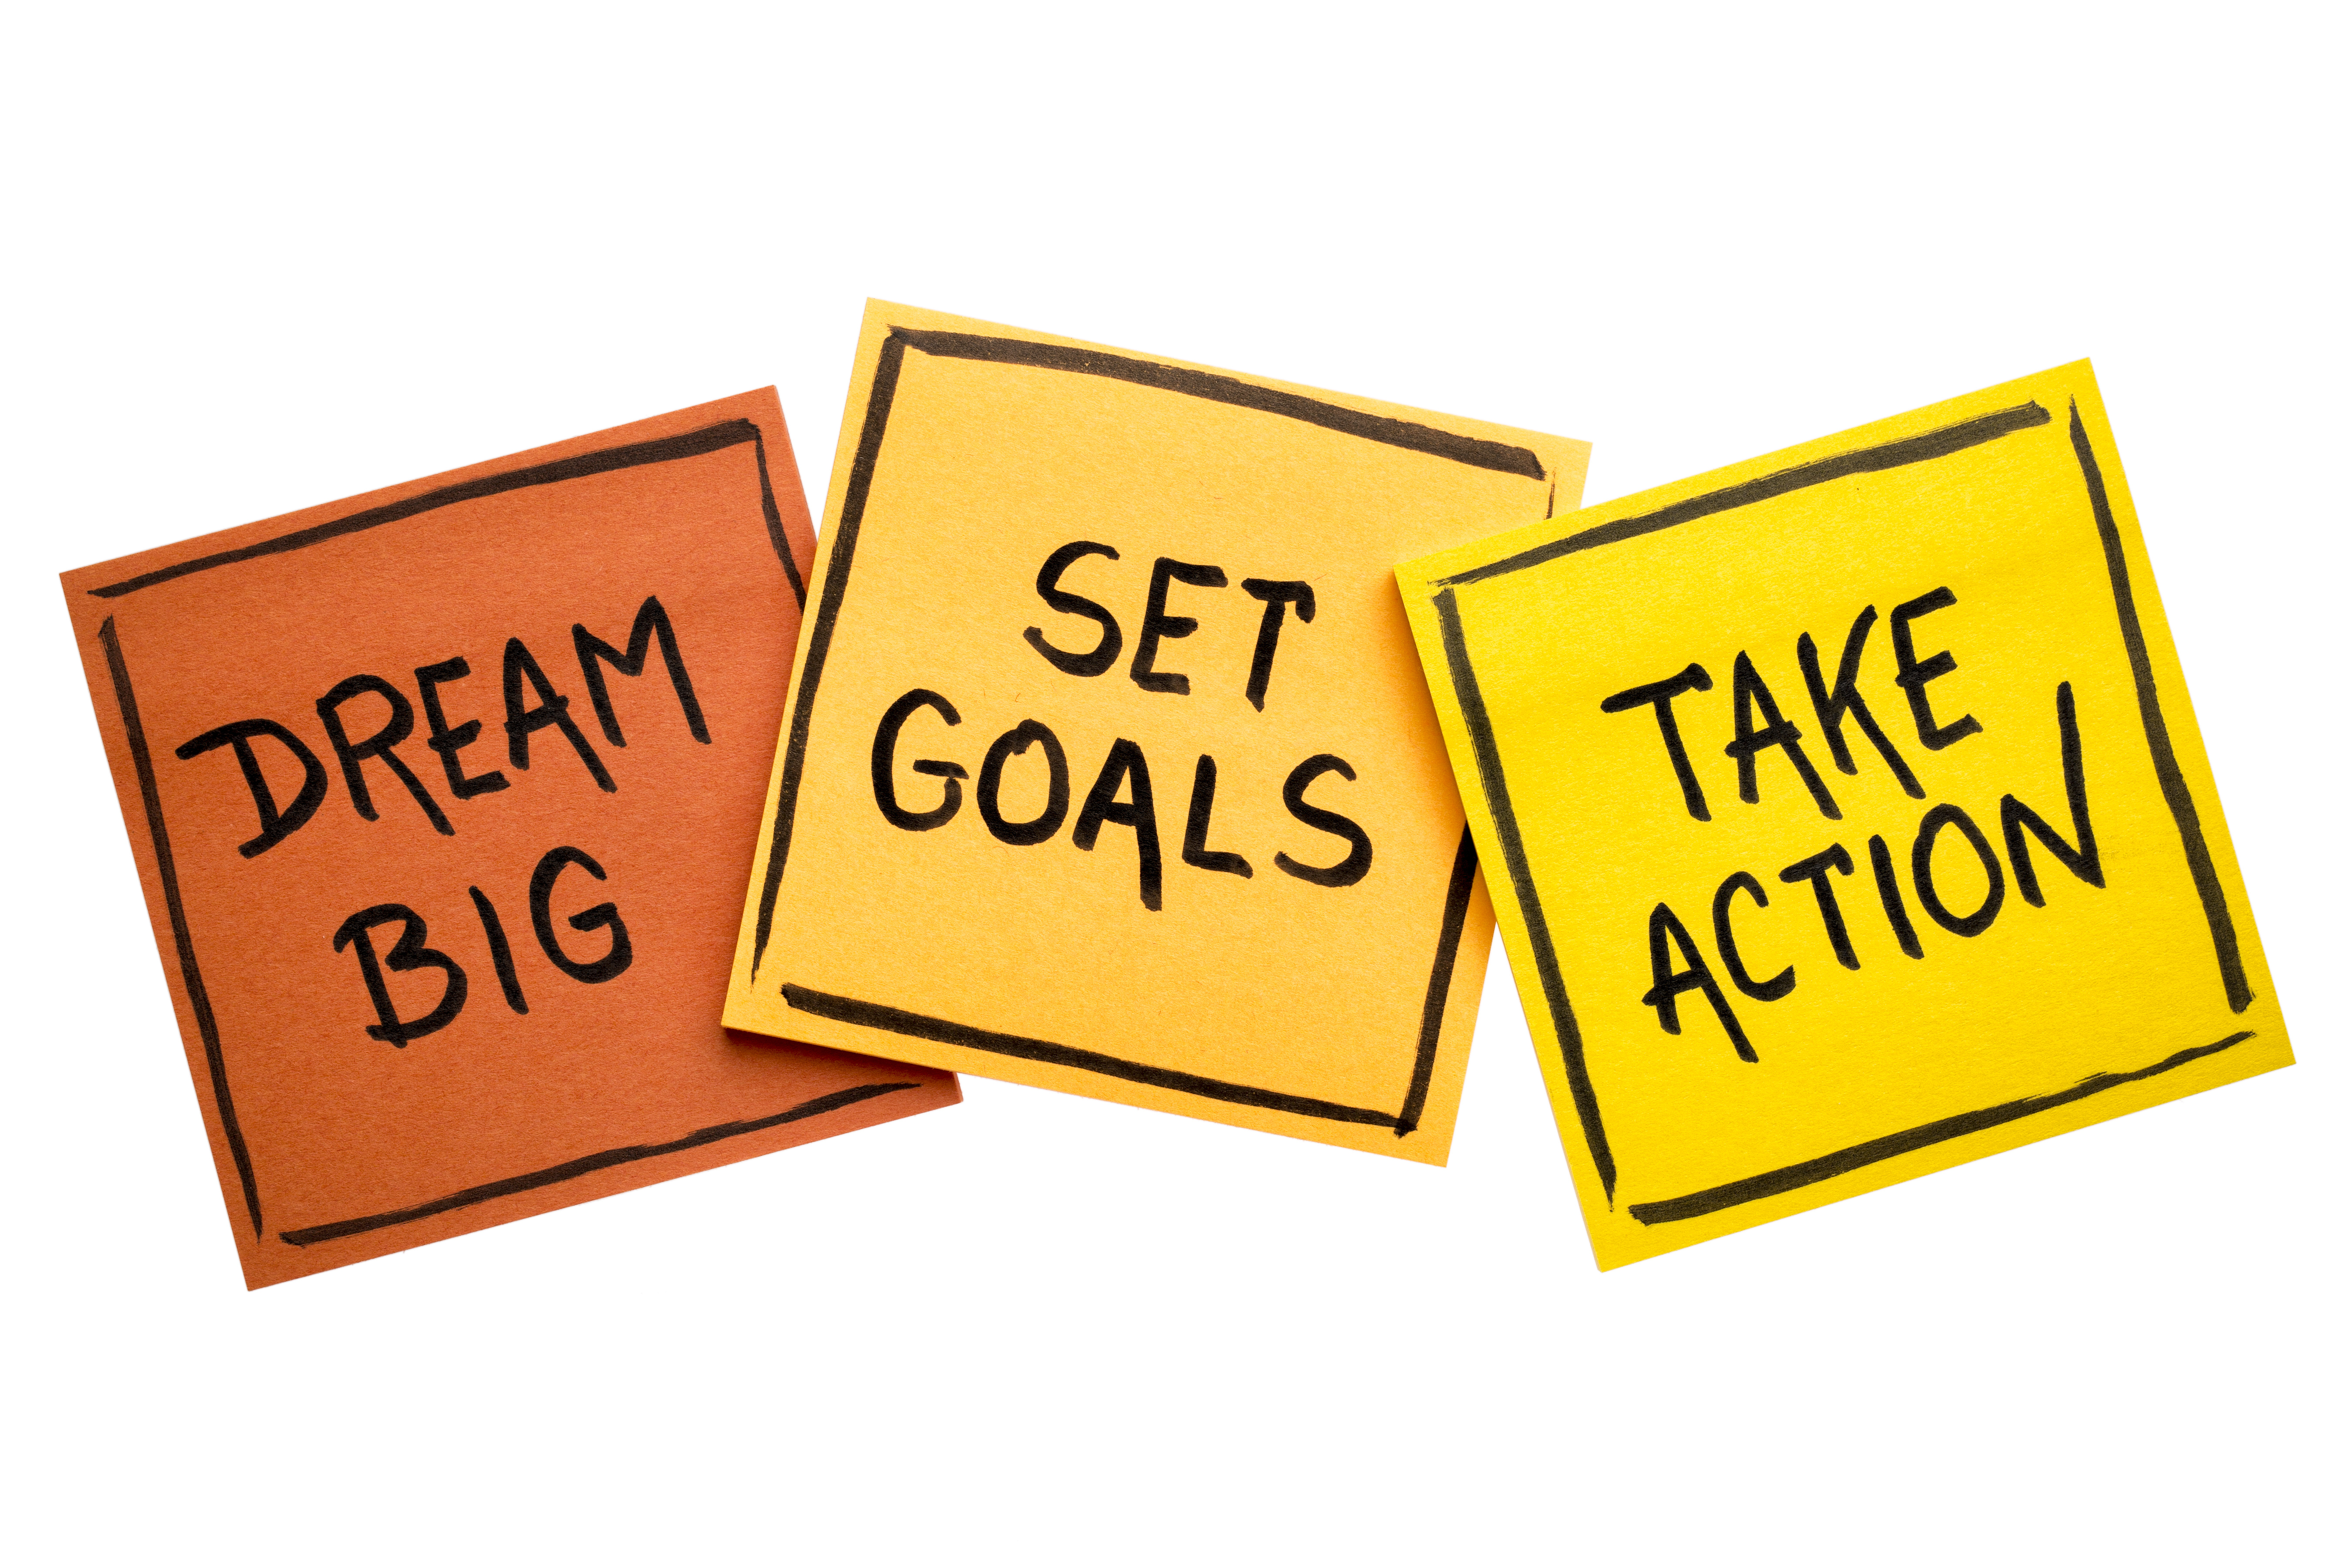 dream big, set goals, take action concept